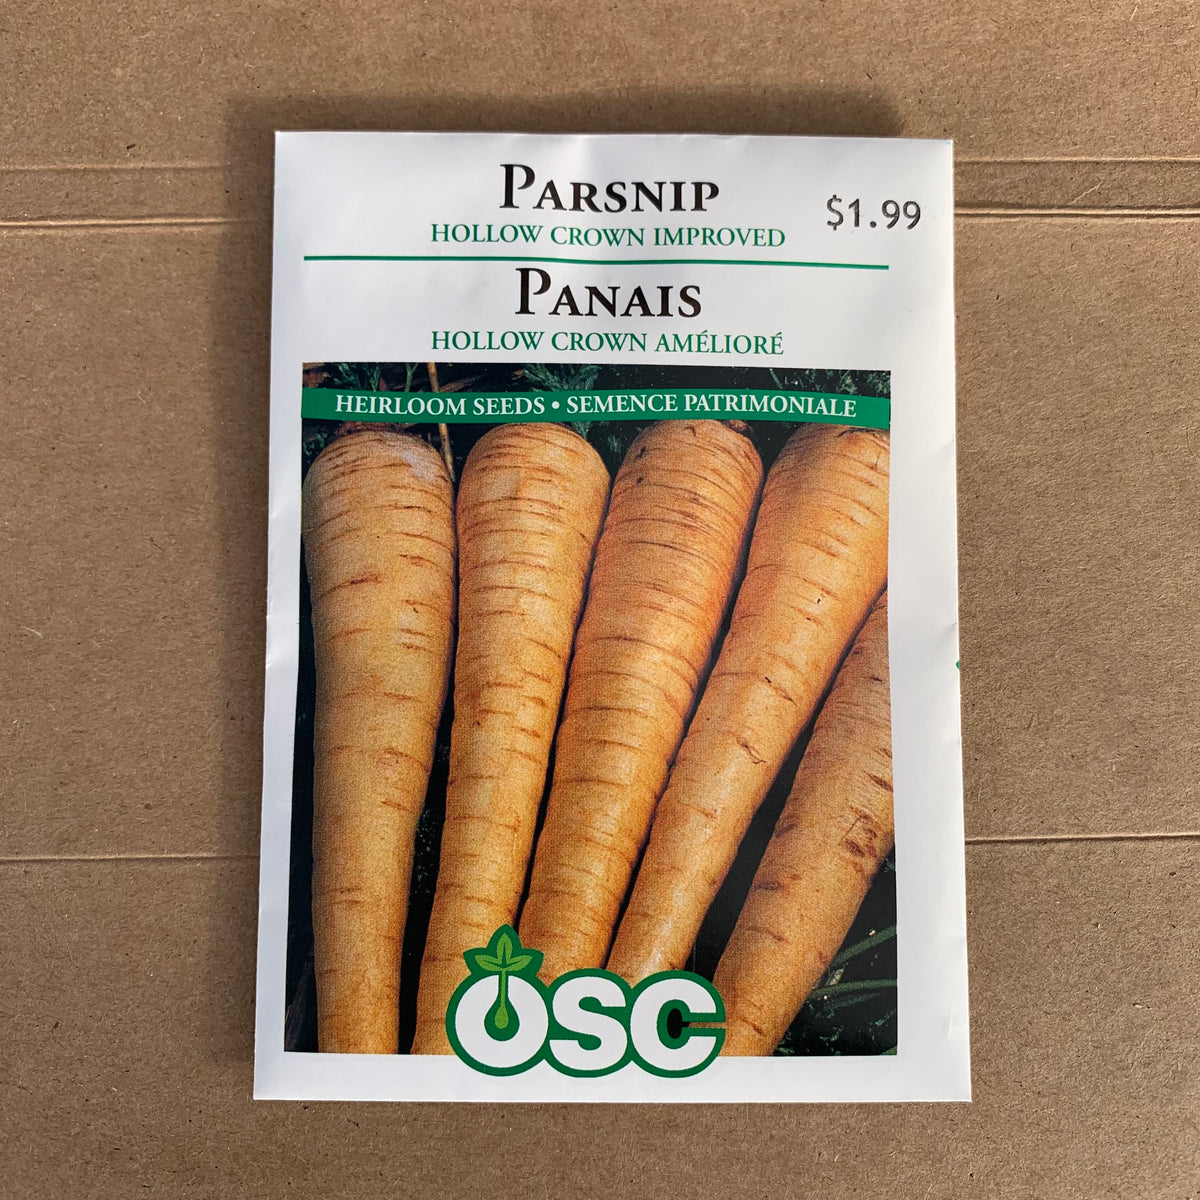 OSC Parsnip 'Hollow Crown improved'